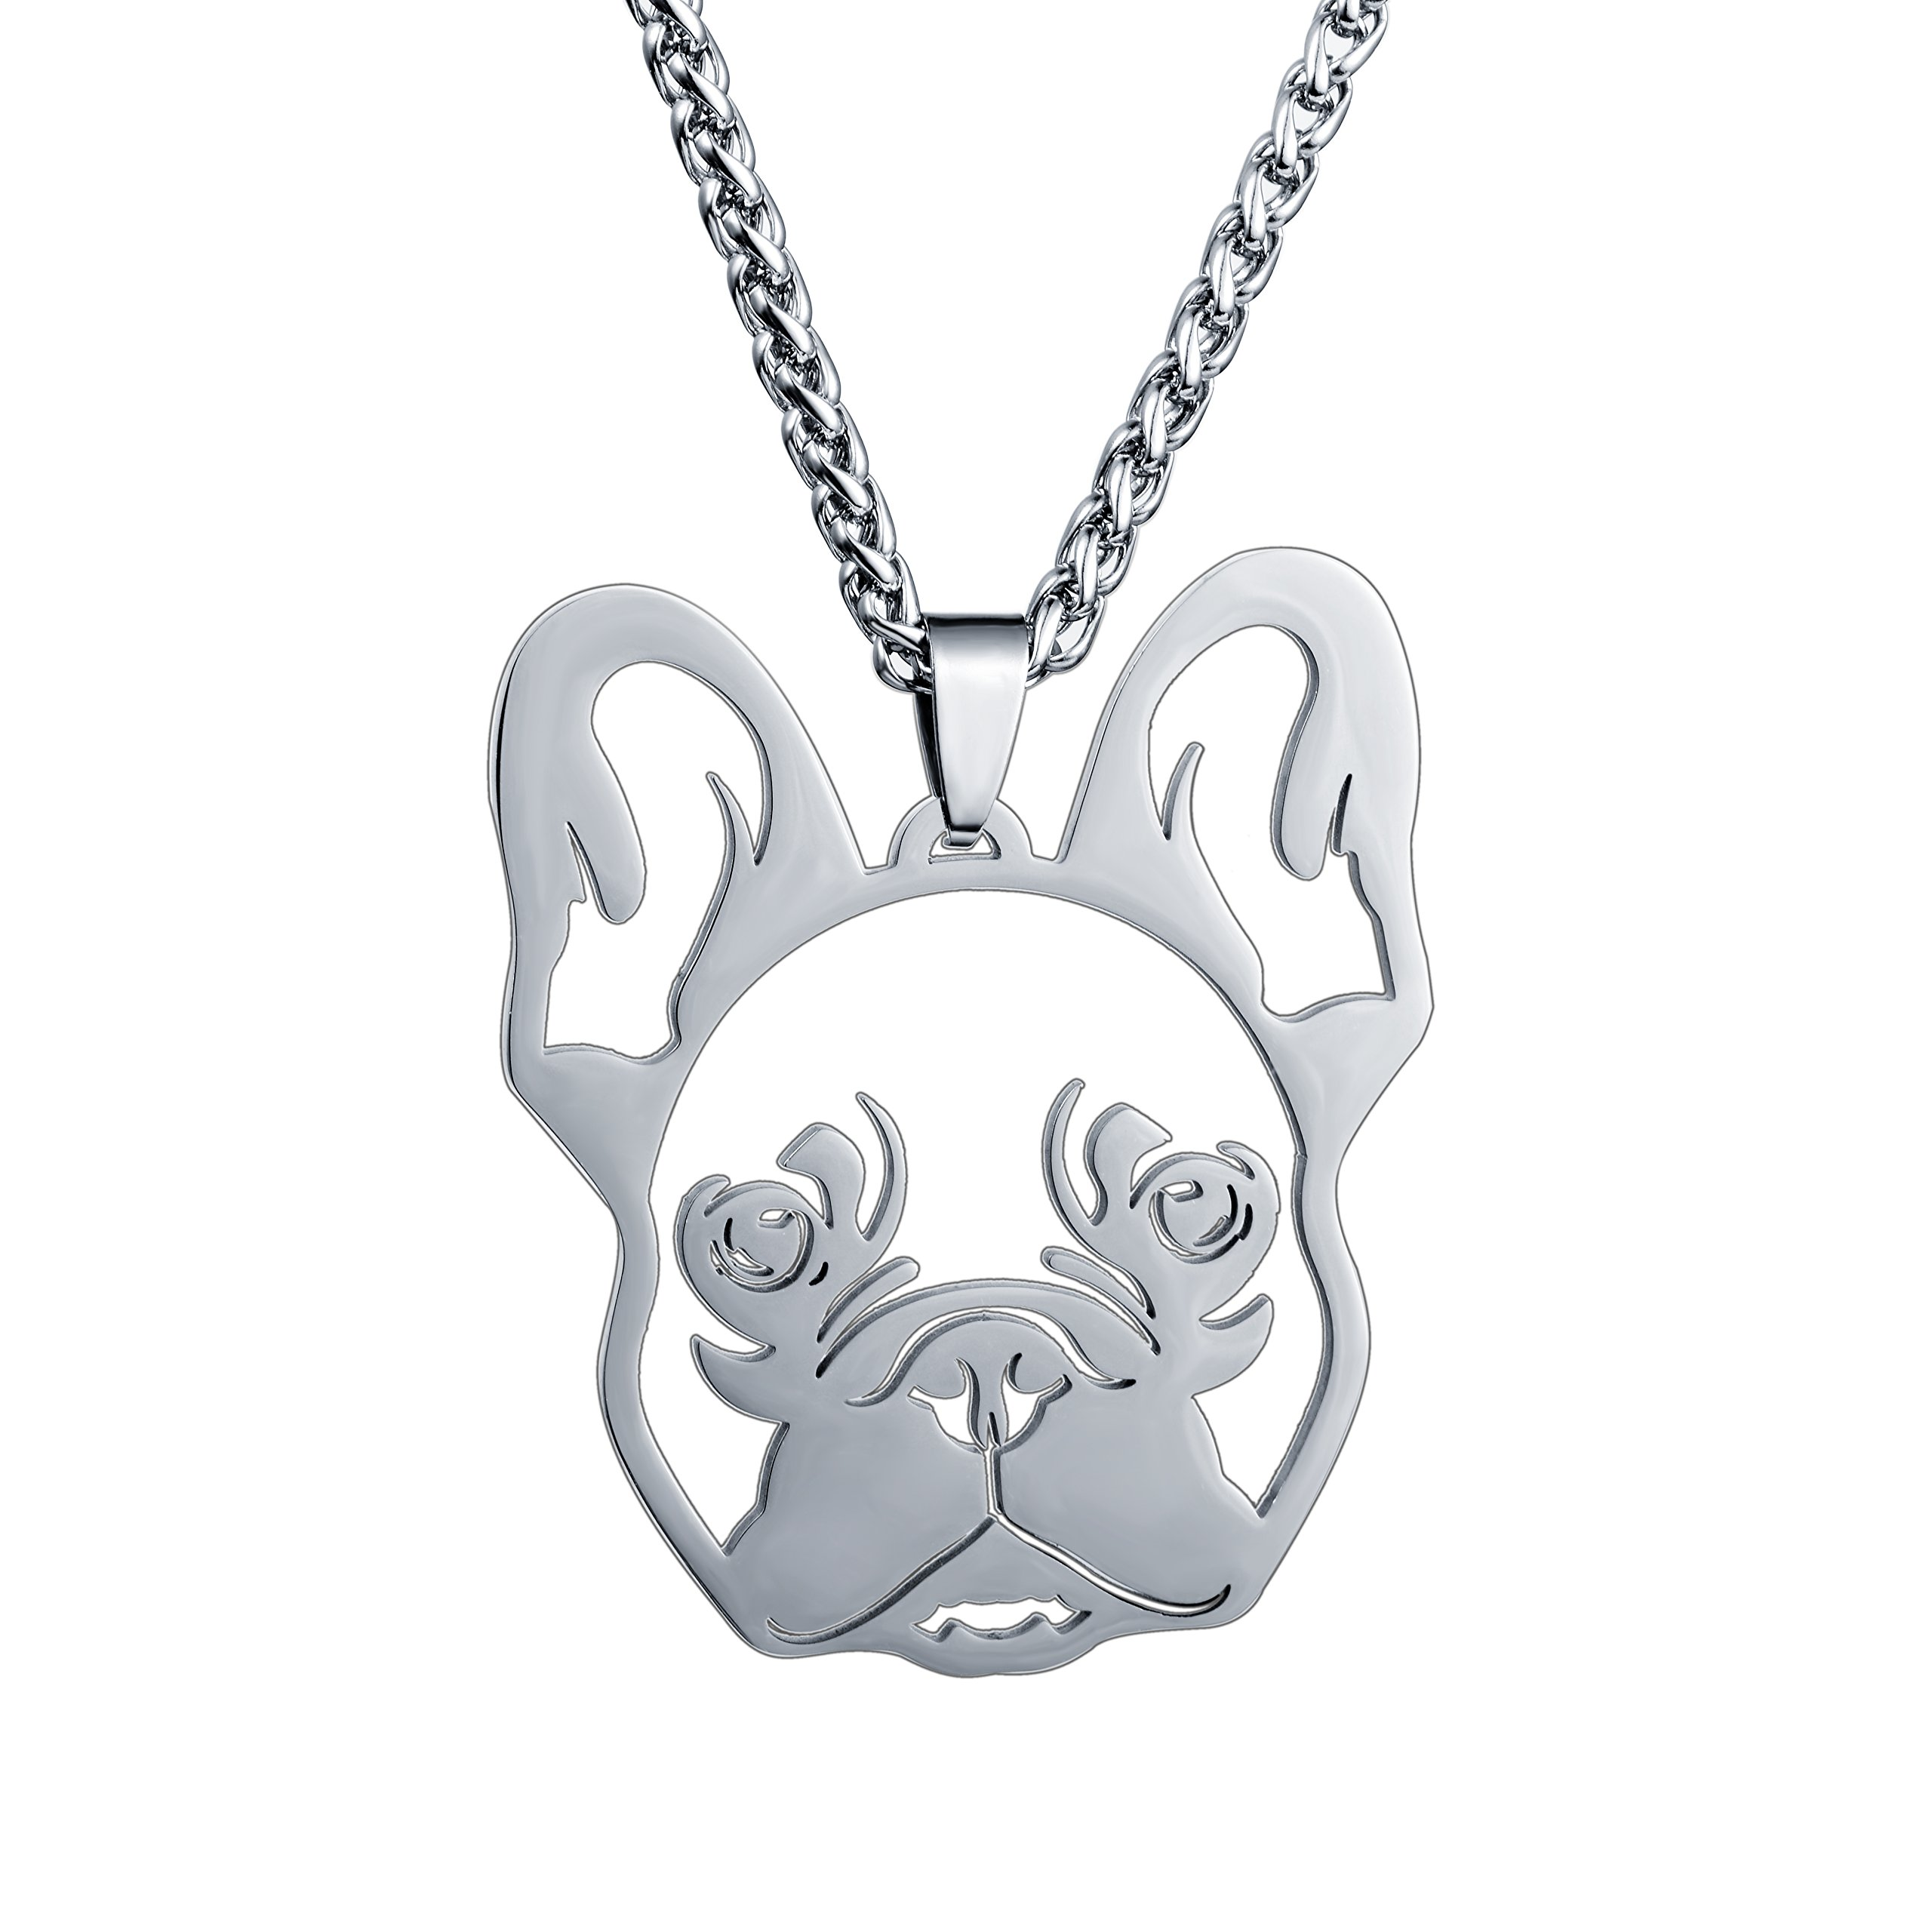 Stainless Steel French Bulldog Frenchie Bull Dog Head Face Pet Dog Charm Pendant Necklace by Dogdotnet